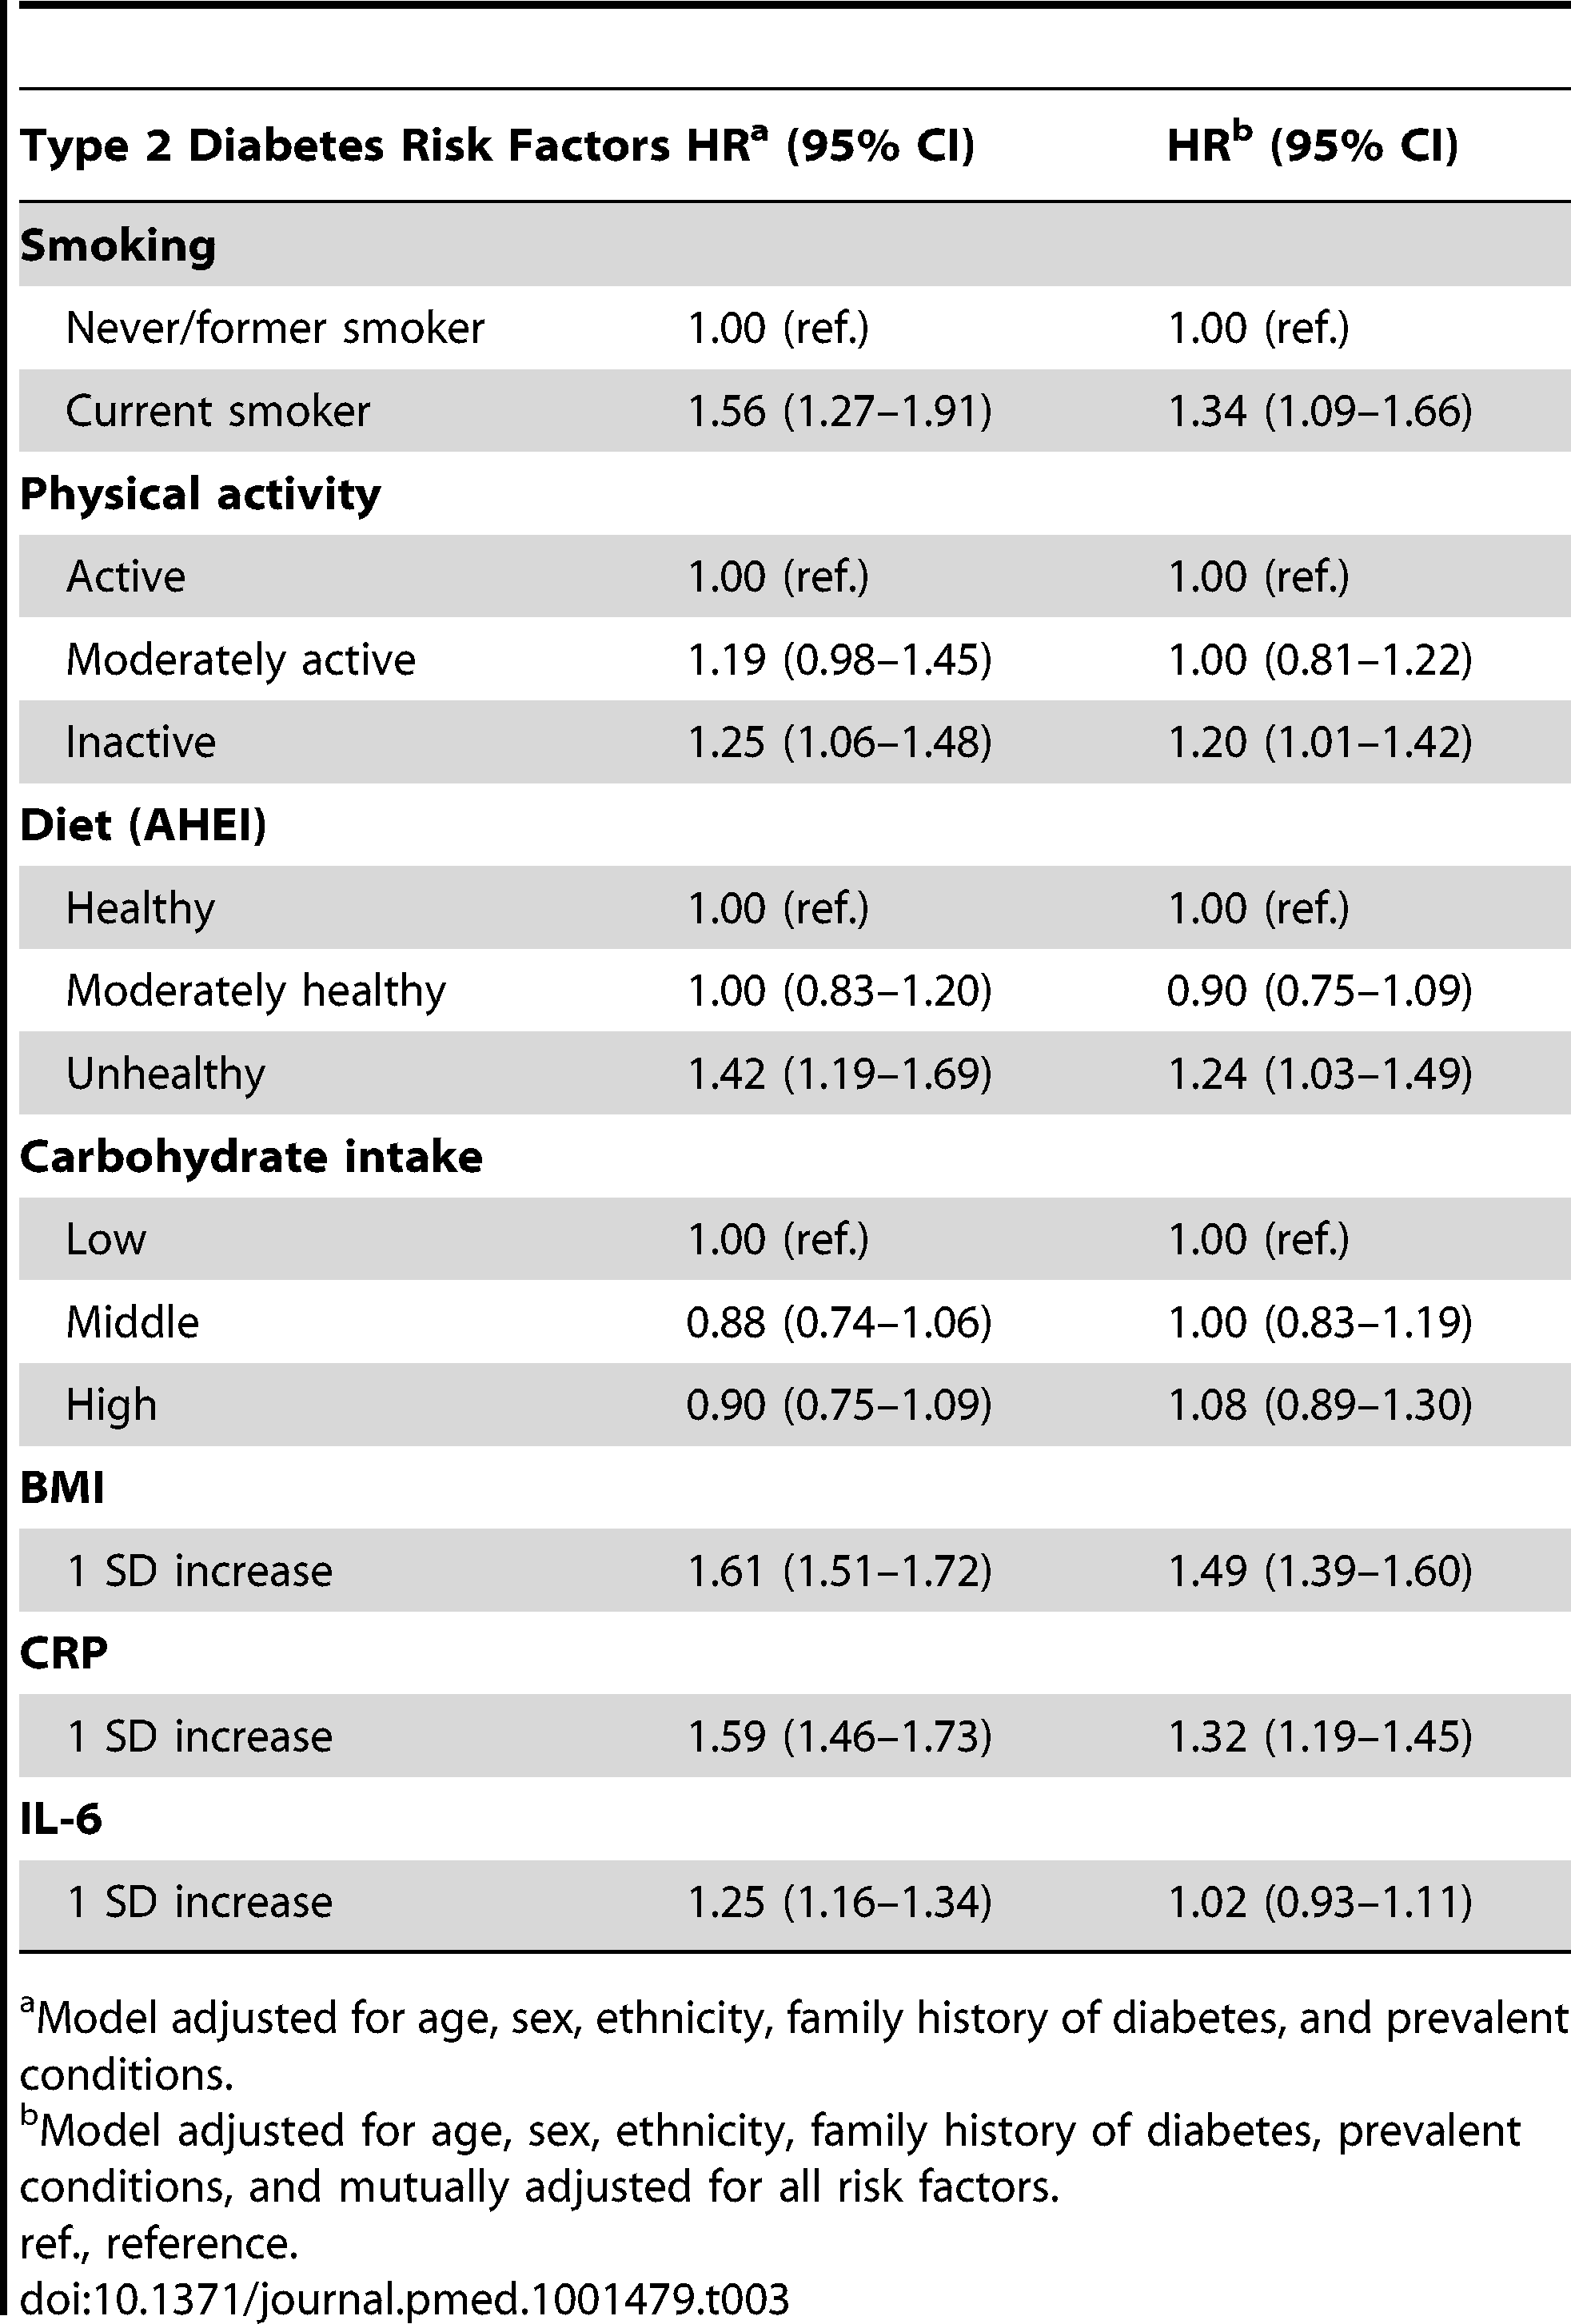 Hazard ratios (95% CI) for the association of inflammatory markers and other risk factors with type 2 diabetes incidence (<i>n</i>=6,387; 731 incident diabetes cases).